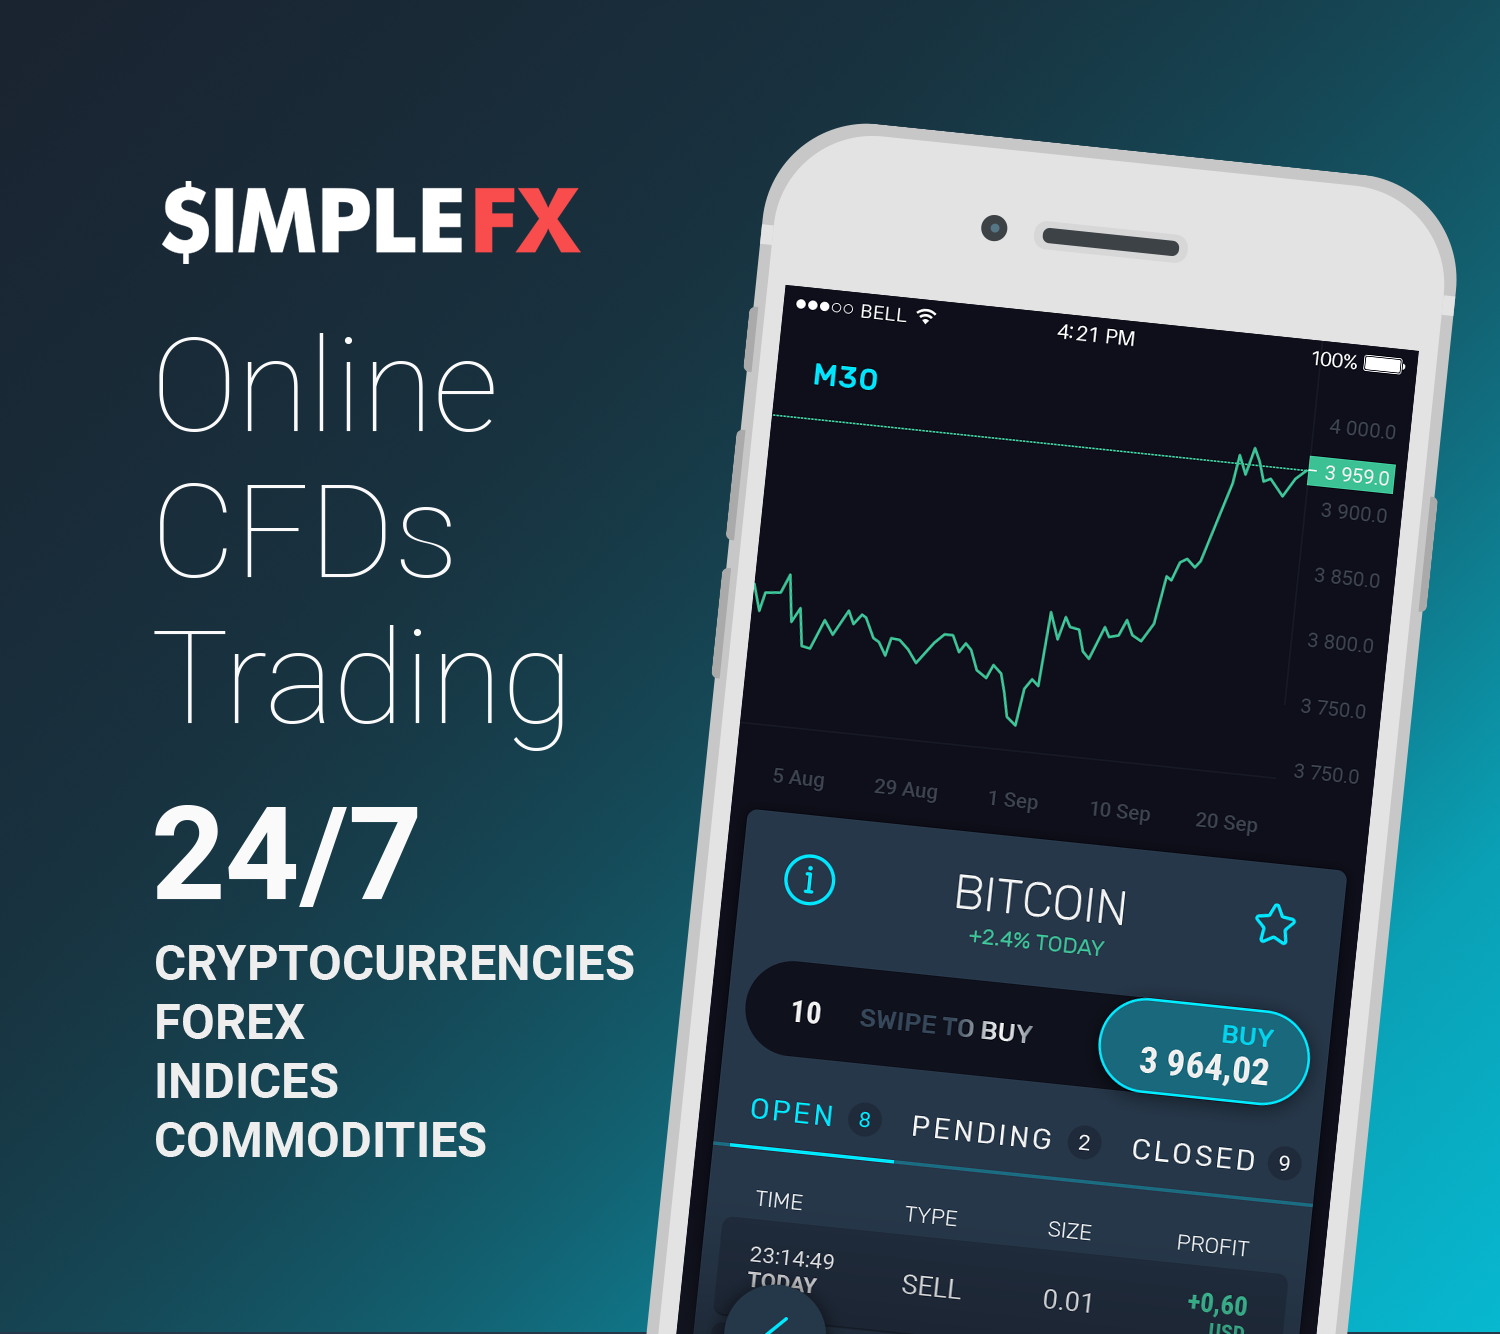 SimpleFX is good for depositing bitcoin and trading mainstream market CFDs, like Forex, stocks, indices and the like, SimpleFX is a great product. Bitcoin depositors get an instant registration and trading experience.